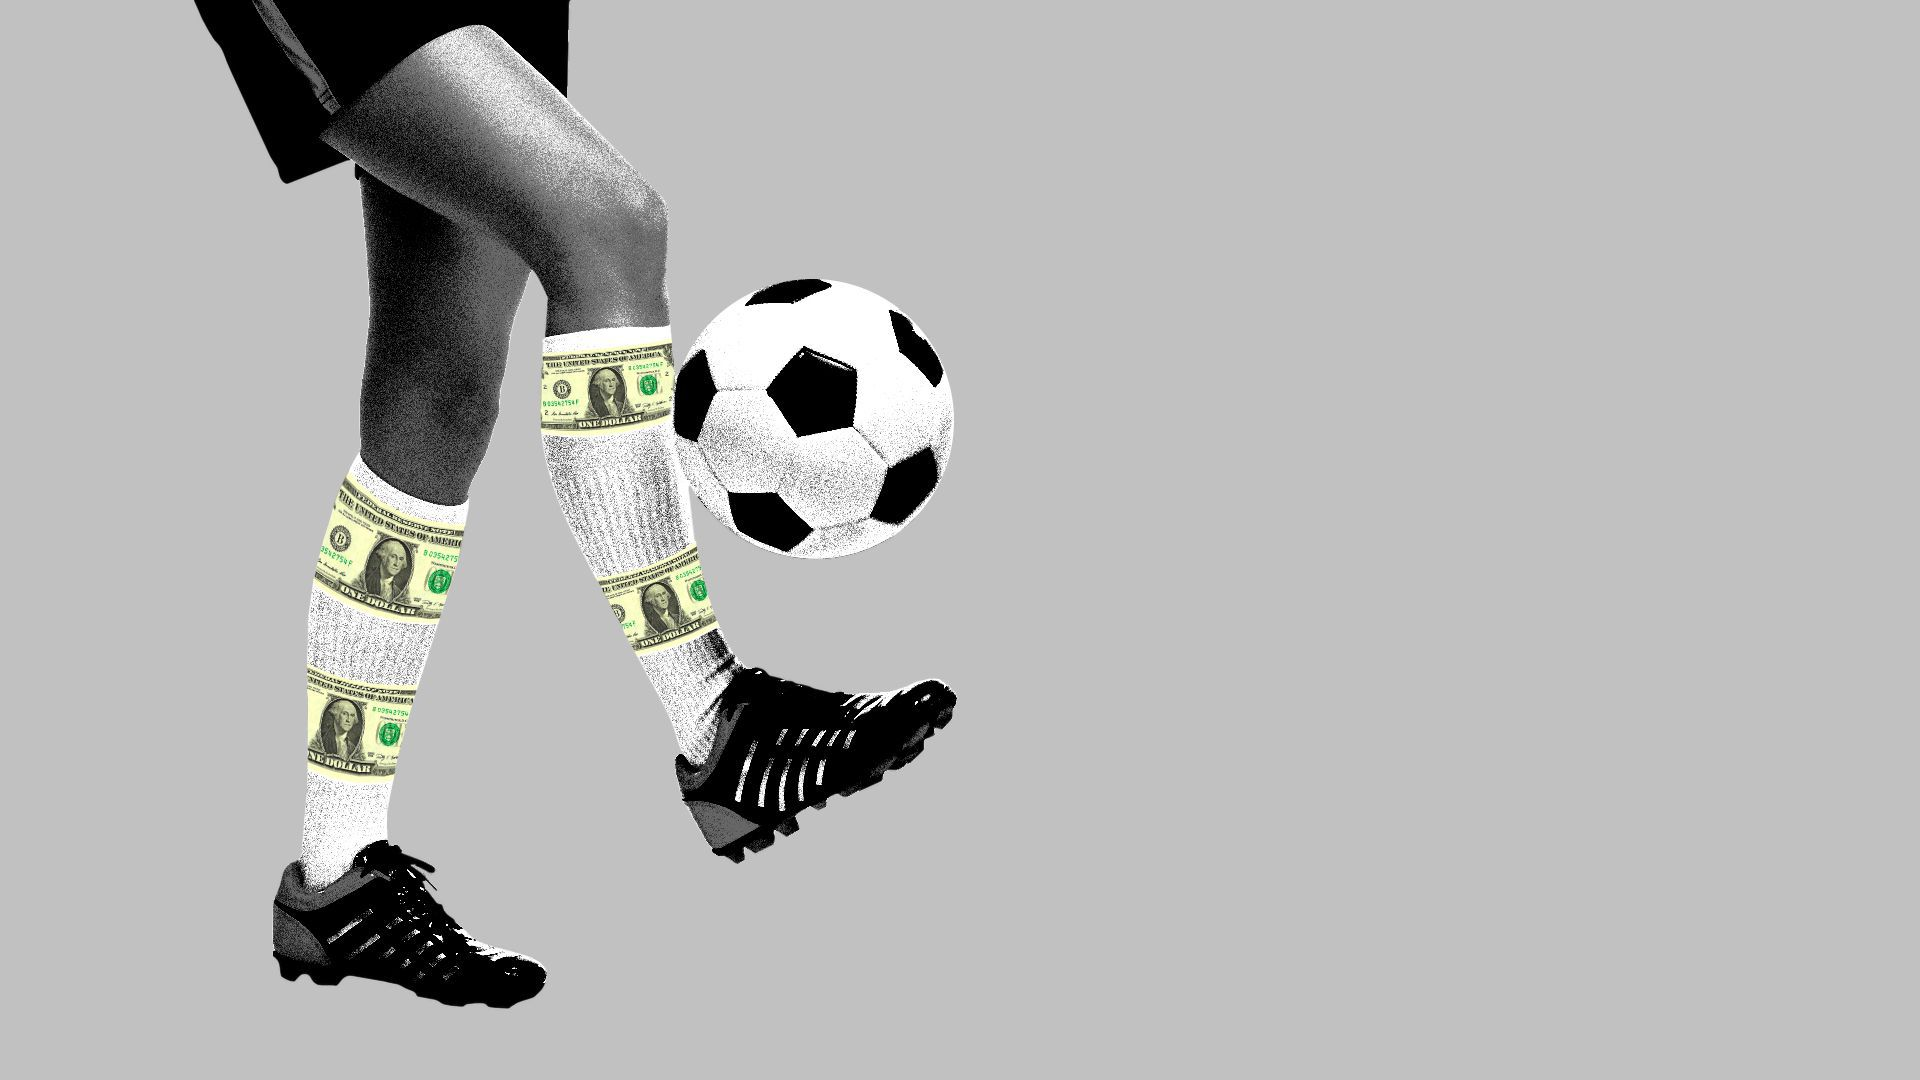 In this illustration, a soccer ball is kicked by someone wearing sports gear and socks with money printed on them.